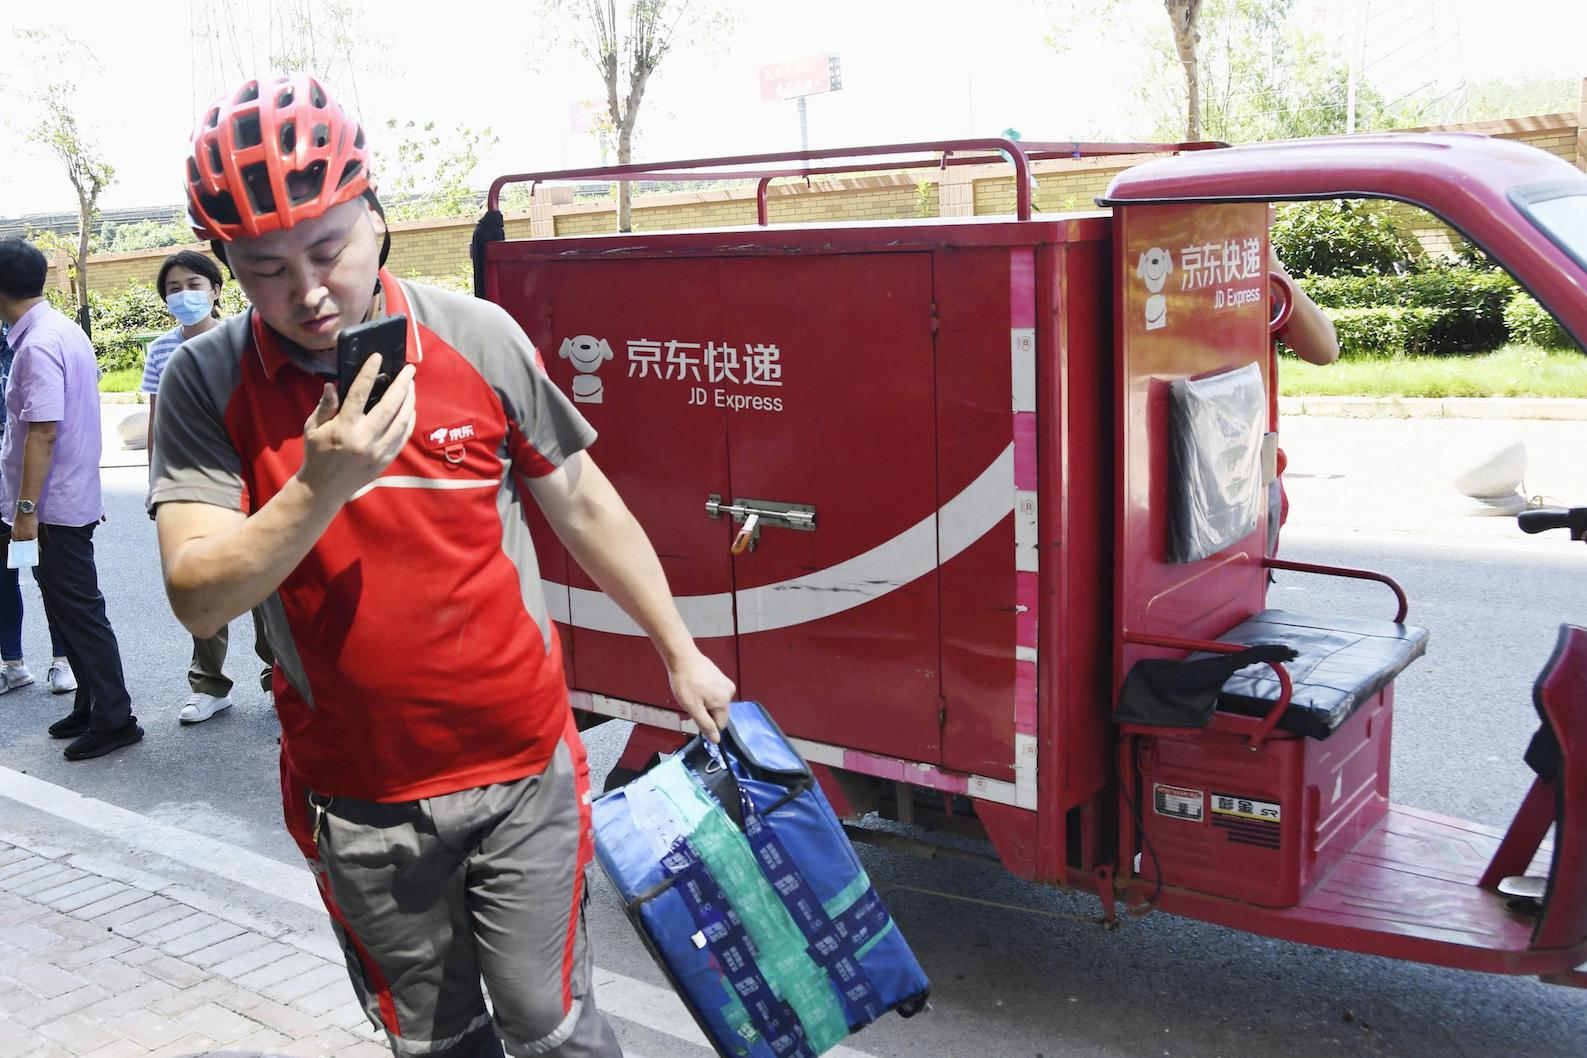 A JD.com Inc. worker makes a delivery to an apartment building in Wuhan, China, on Aug. 13, 2020.